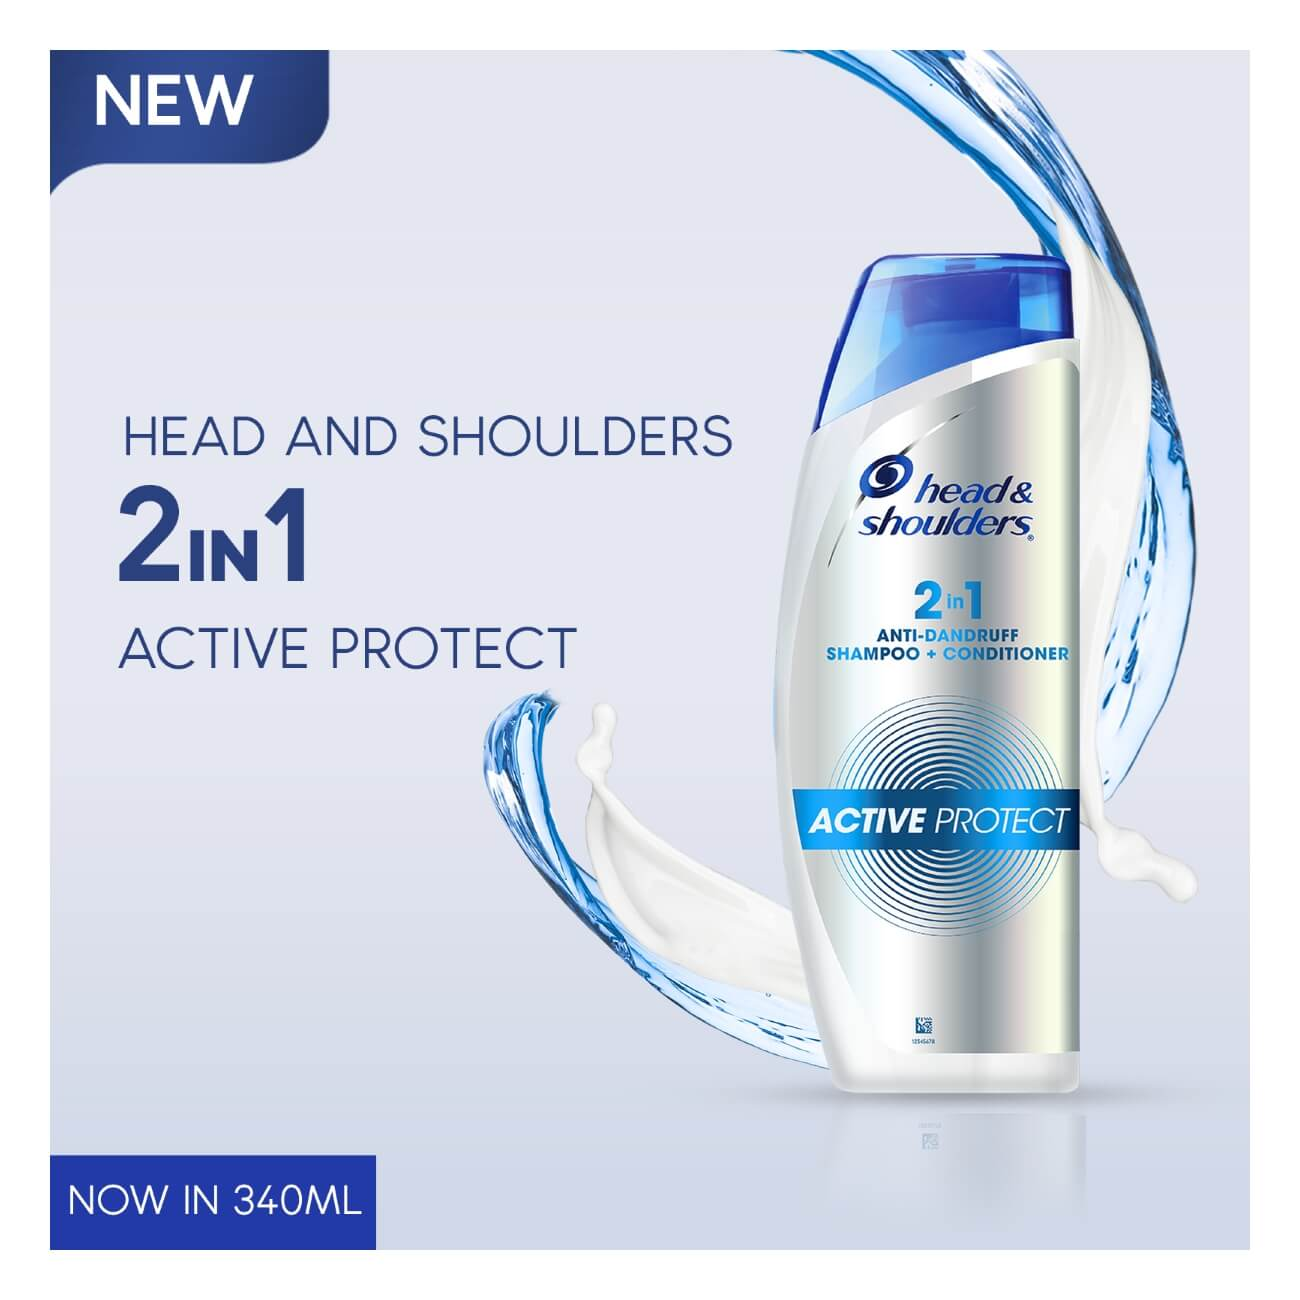 Head and Shoulders 2-in-1 Active Protect Anti-Dandruff Shampoo + Conditioner